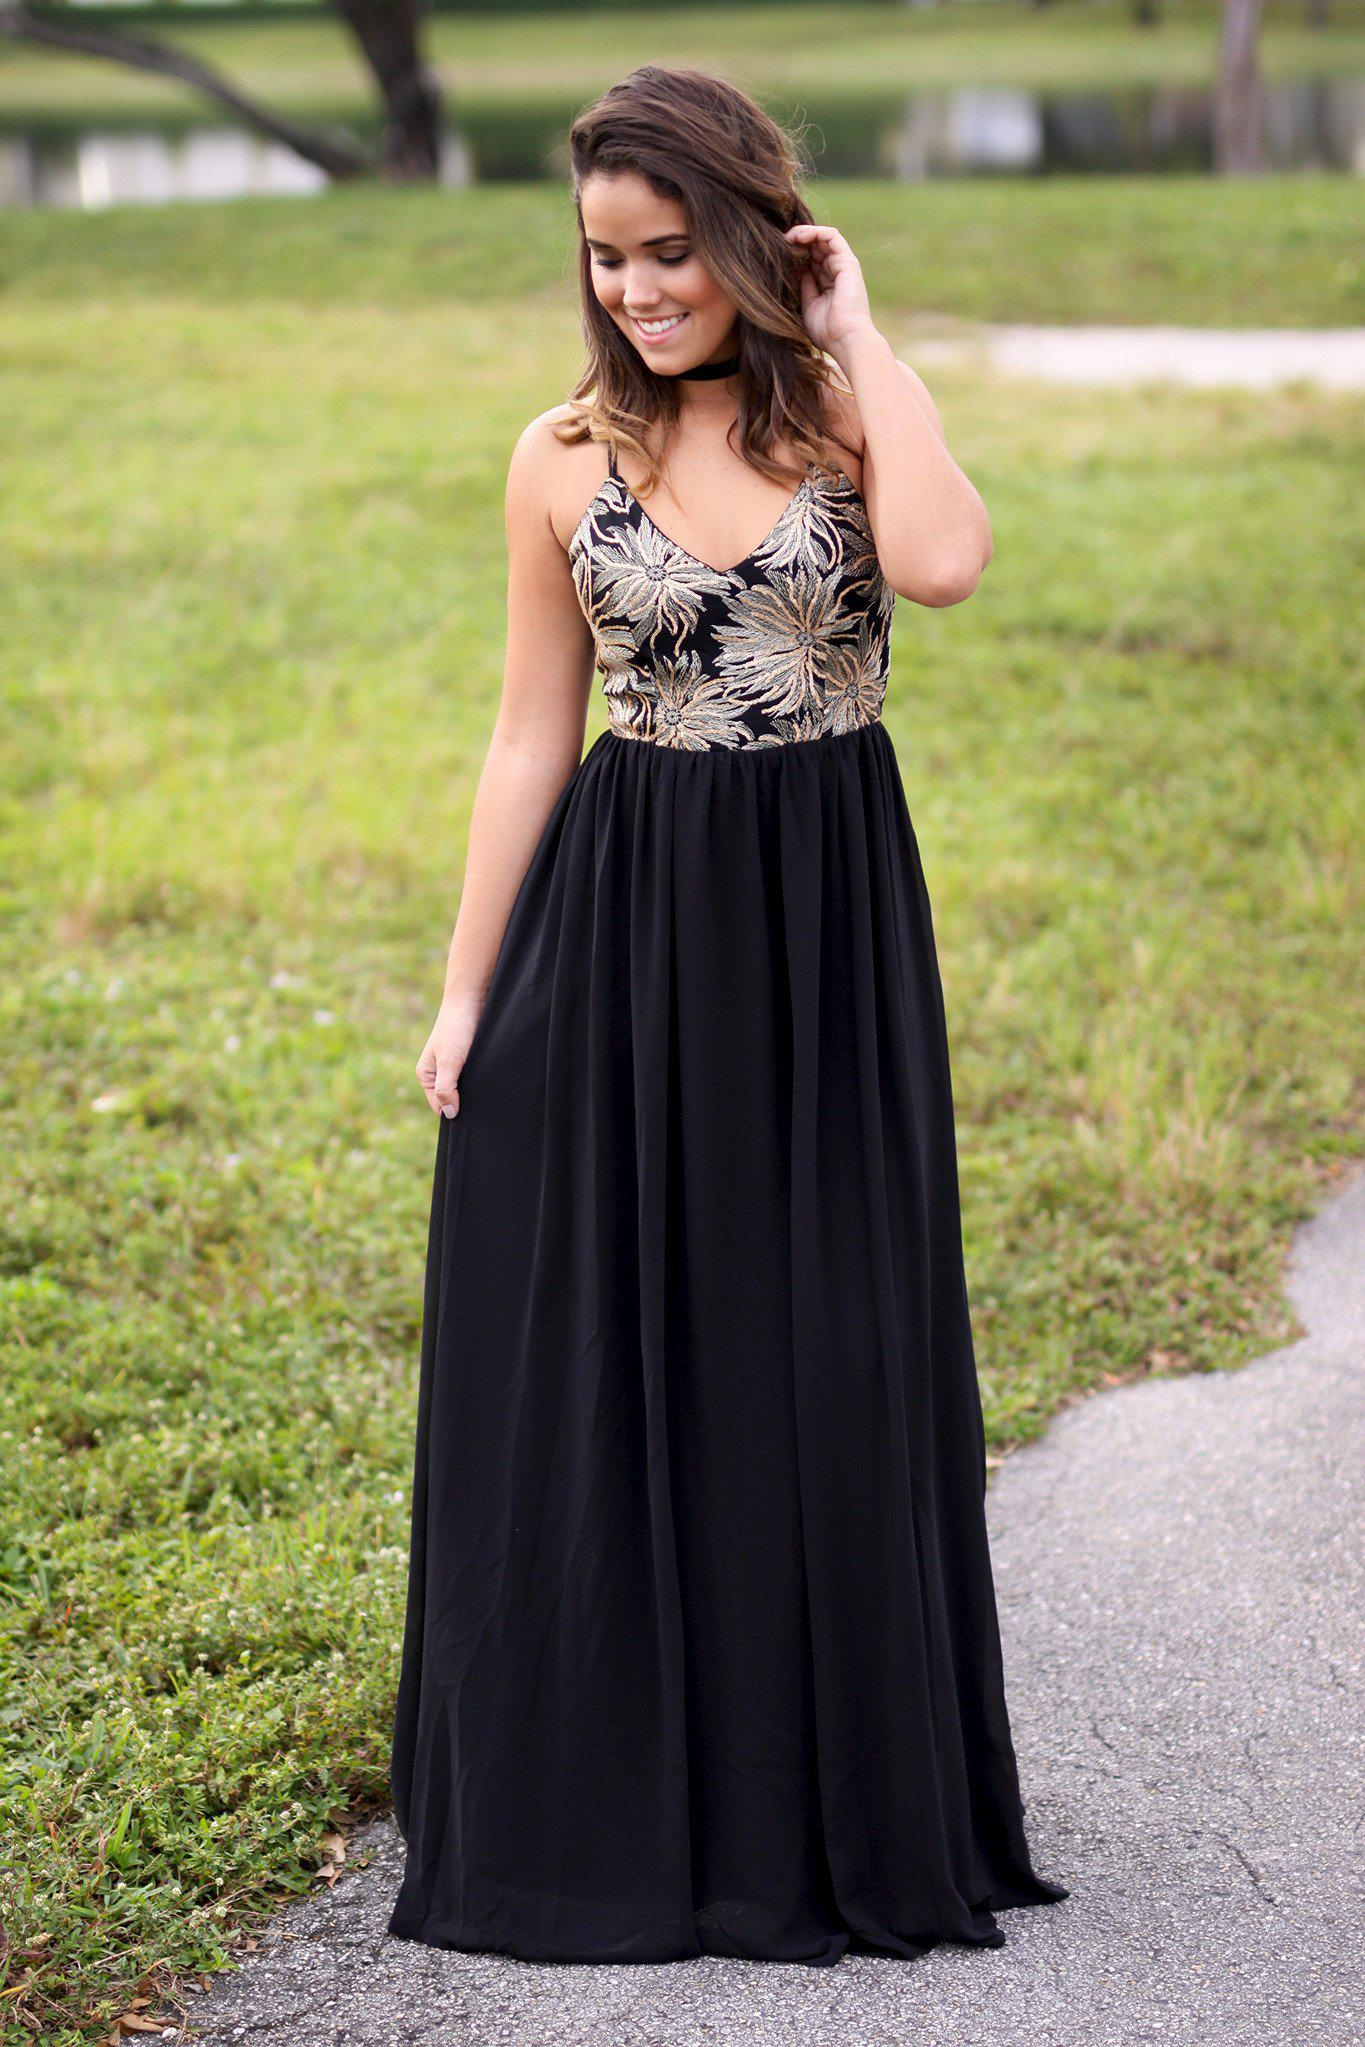 Black and Gold Maxi Dress with Crochet Back | Black Evening Gown ...